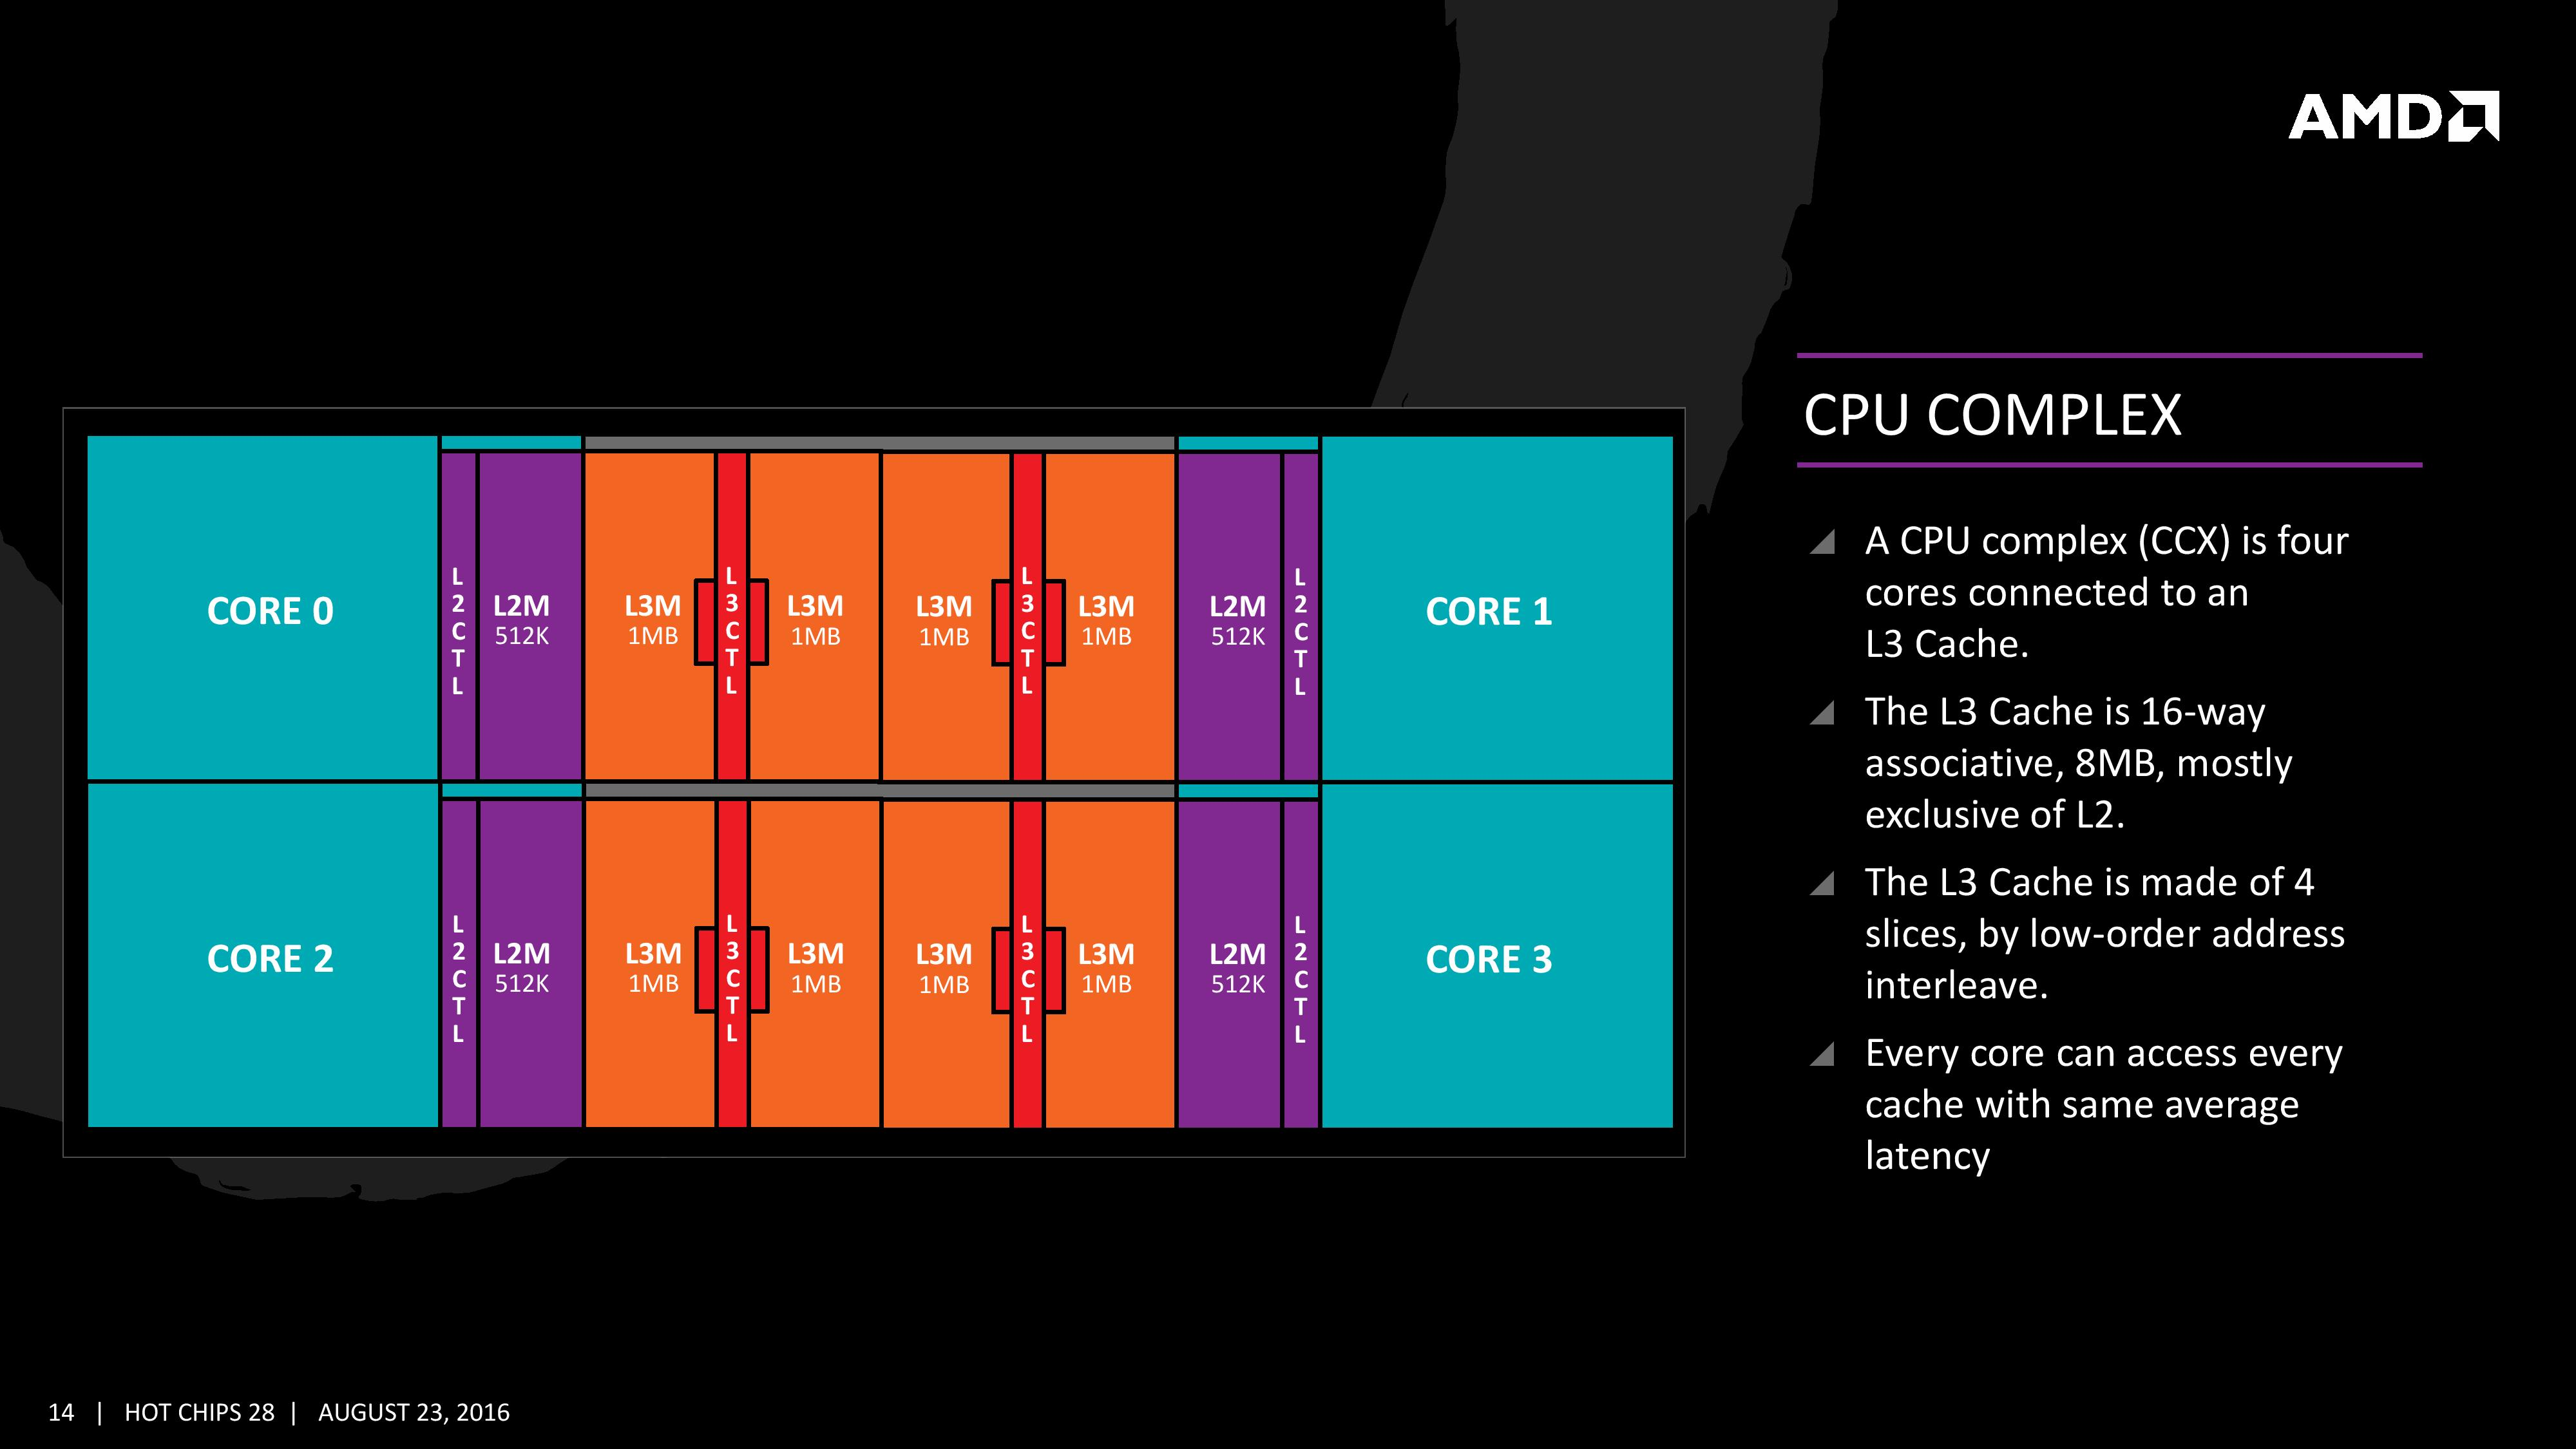 The Core Complex, Caches, and Fabric - The AMD Zen and Ryzen